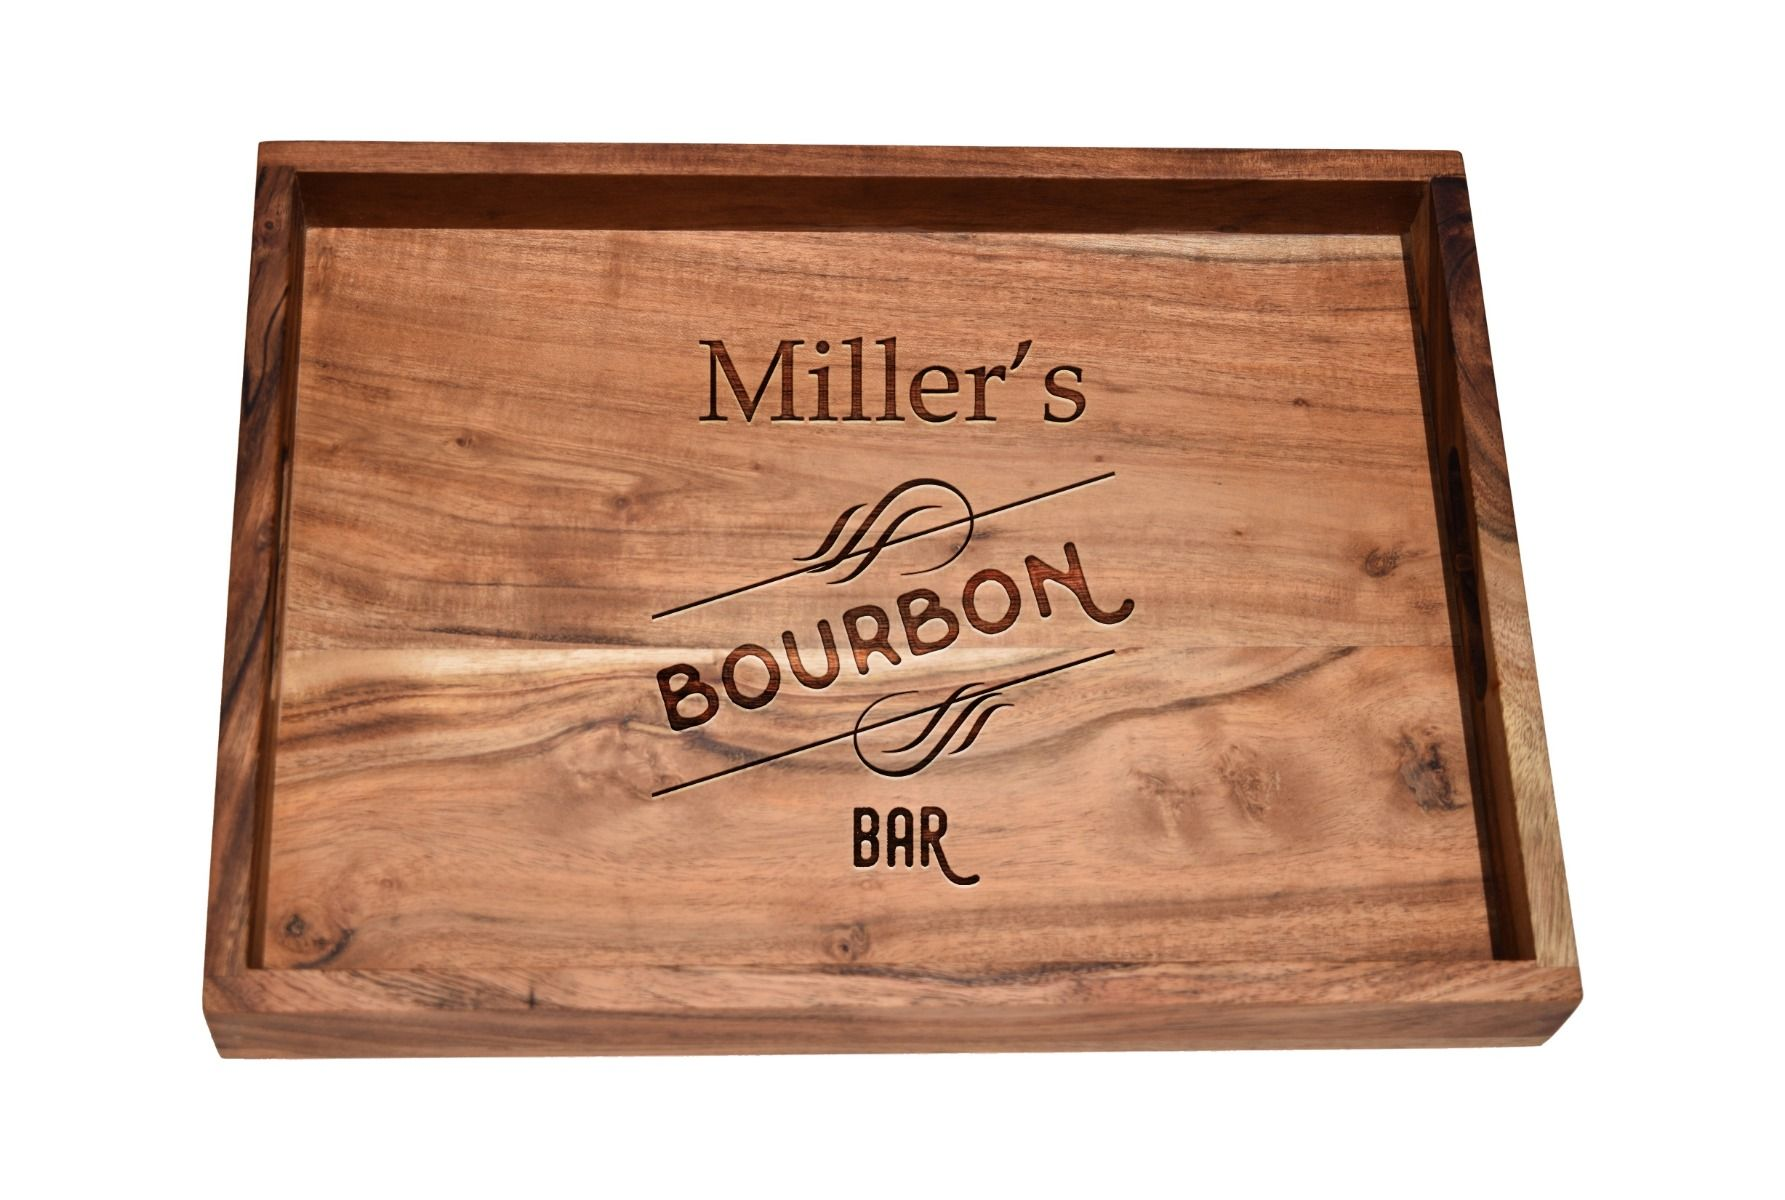 Bourbon bar tray, a personalized wooden serving tray